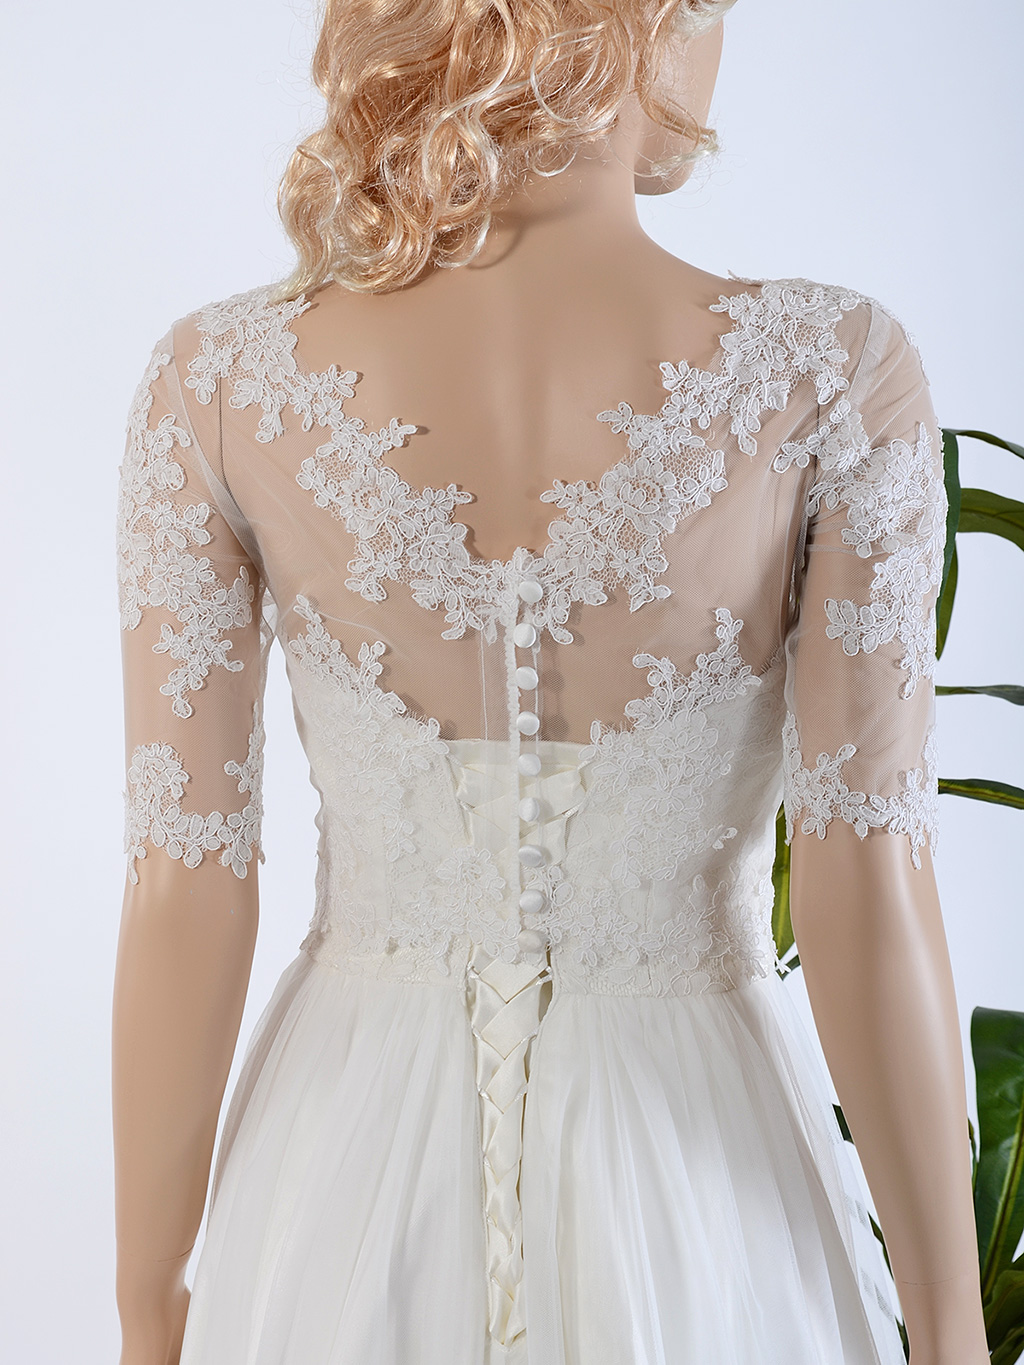 bolero for wedding dresses photo - 1